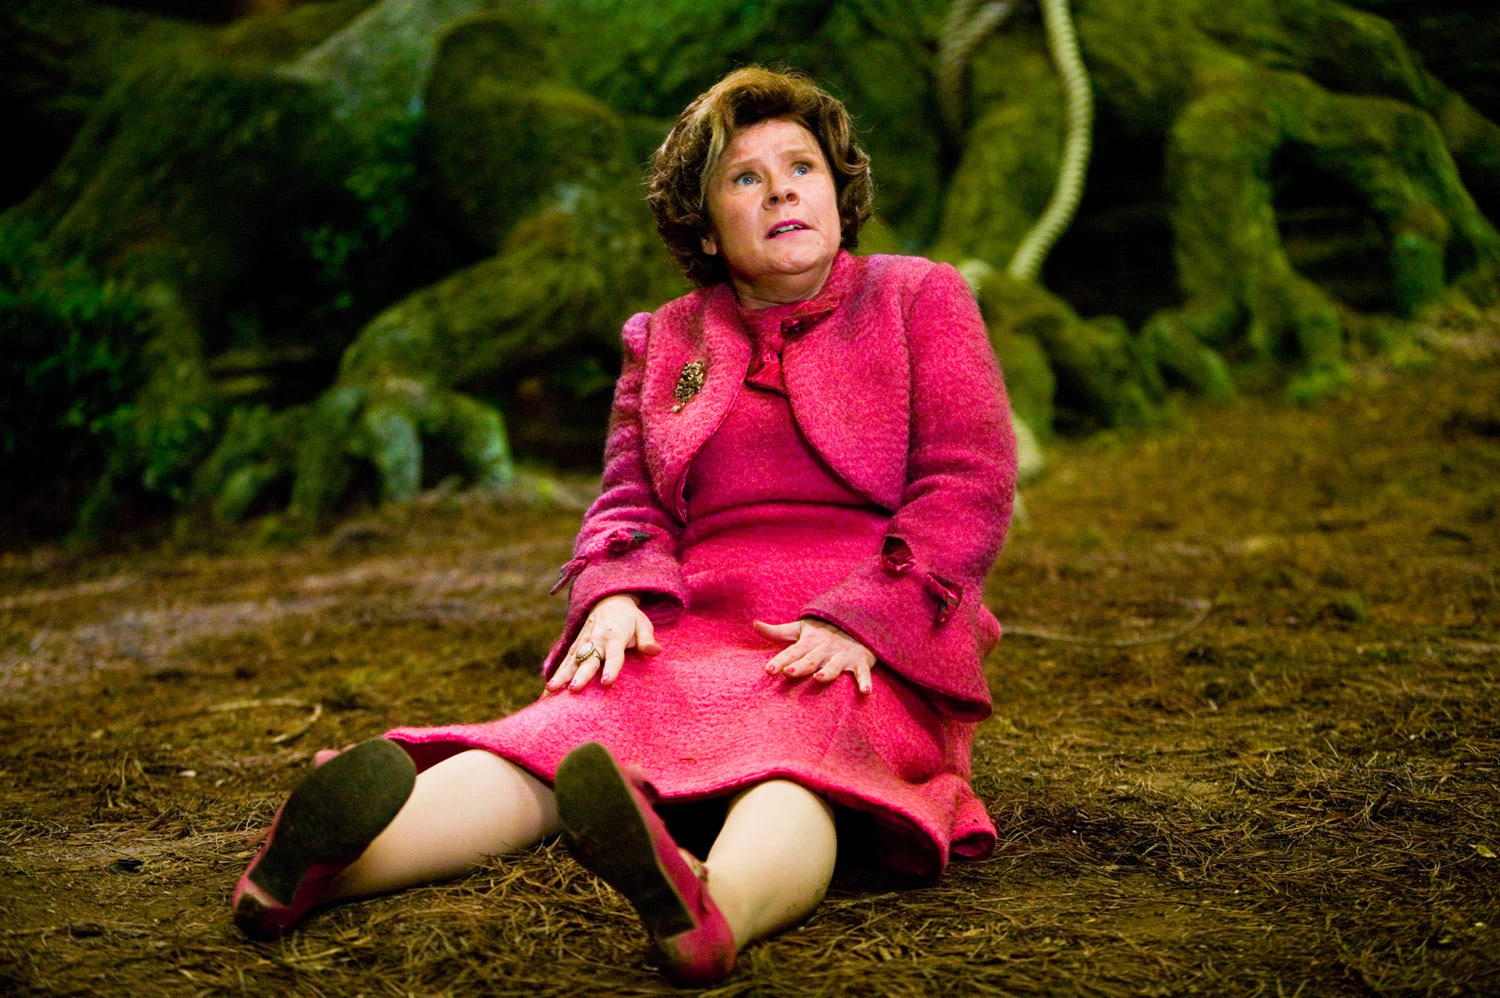 Umbridge on the Forest floor